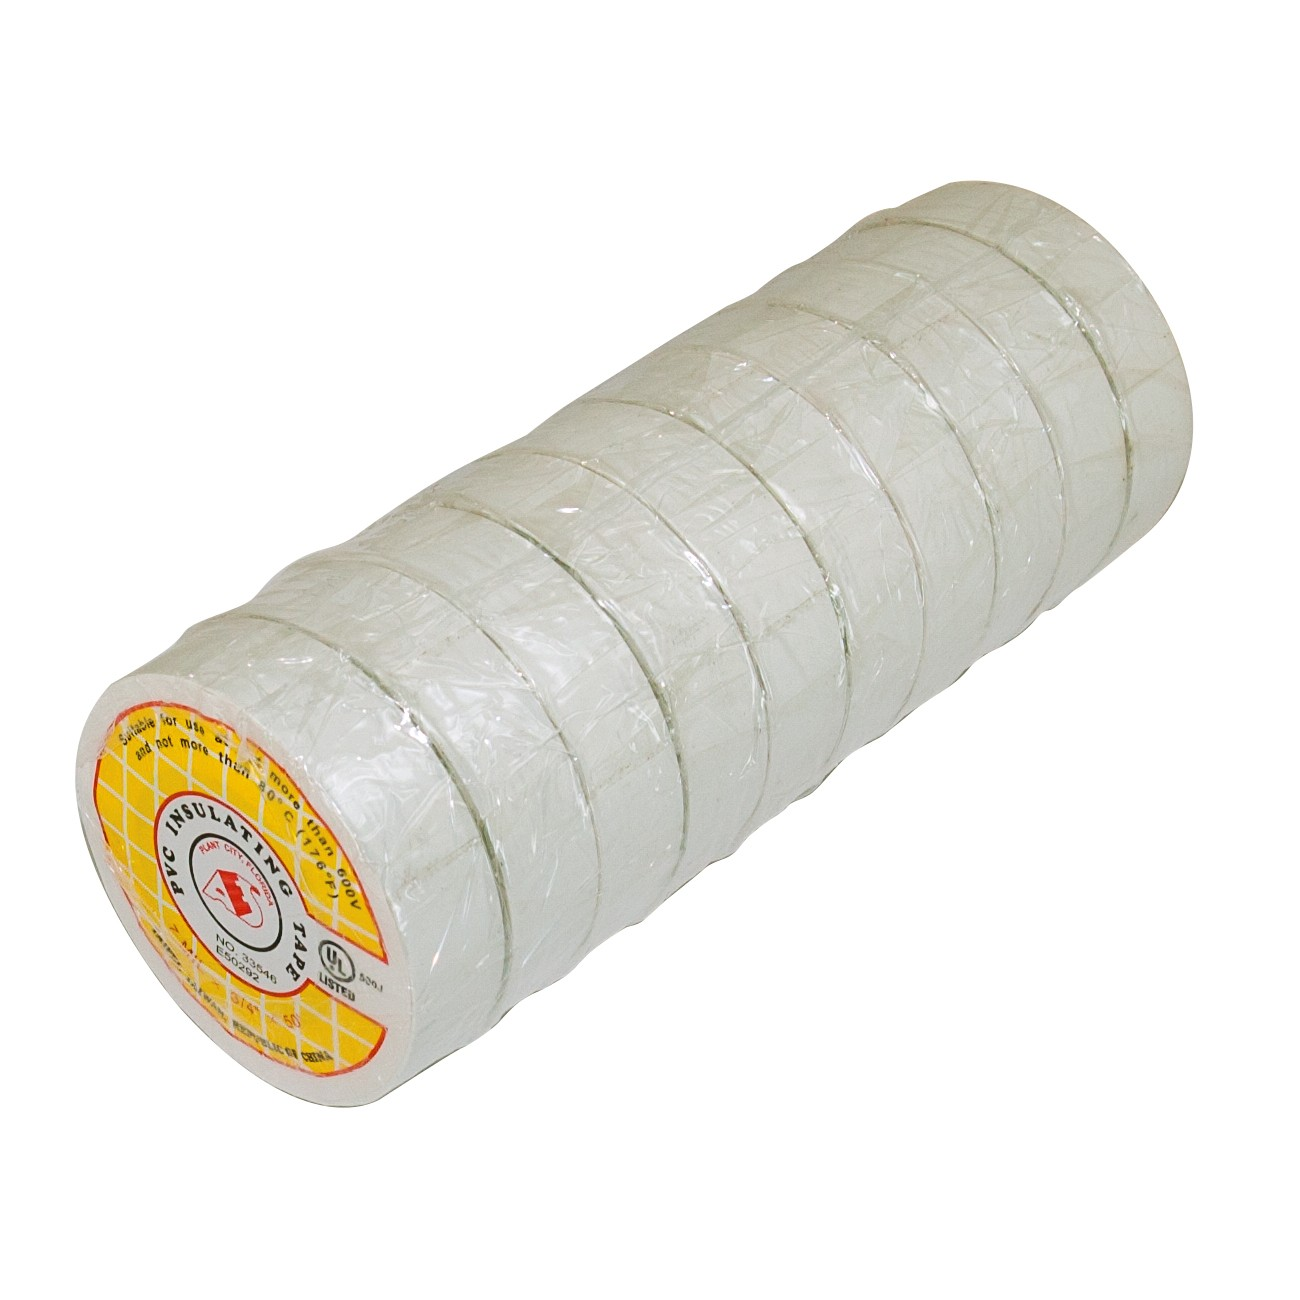 "50ft 3/4"" Electrical Tape - White (10 Rolls)"